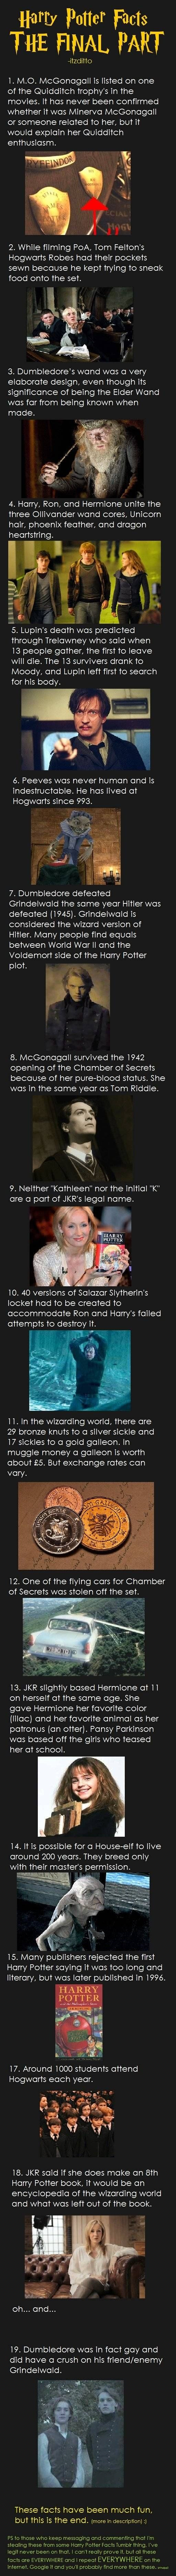 Harry Potter Facts 9 (The Final Part) - Imgur. (Re #1 and #8, if McGonagall was in school with Tom Riddle, she didn t play Quidditch with James Potter.)